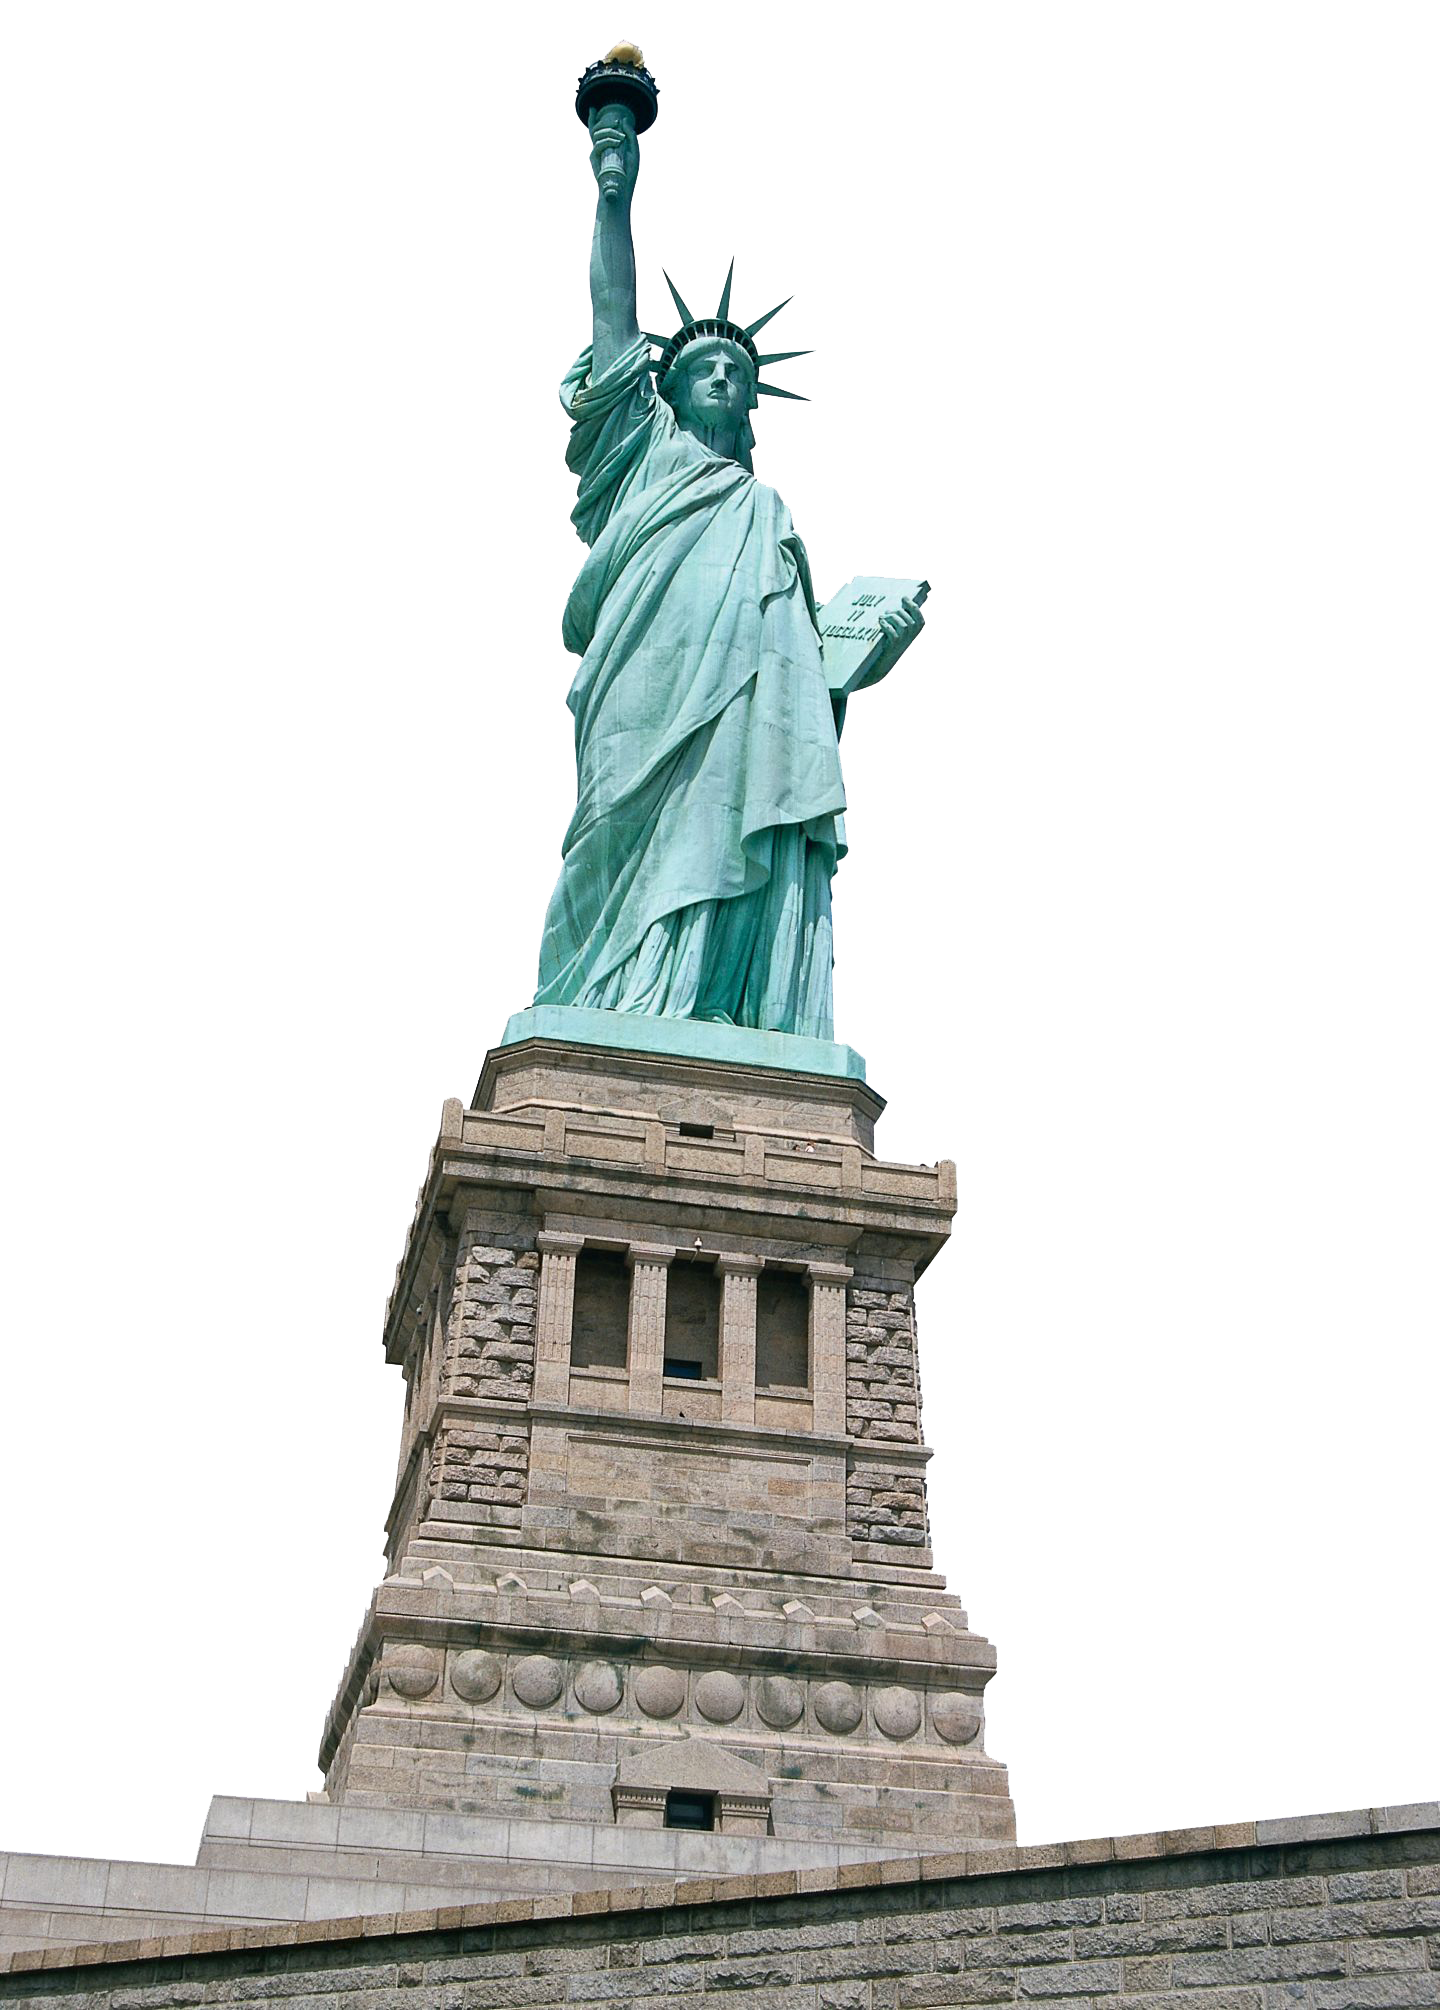 Statue of liberty png clipart. Transparent images all image